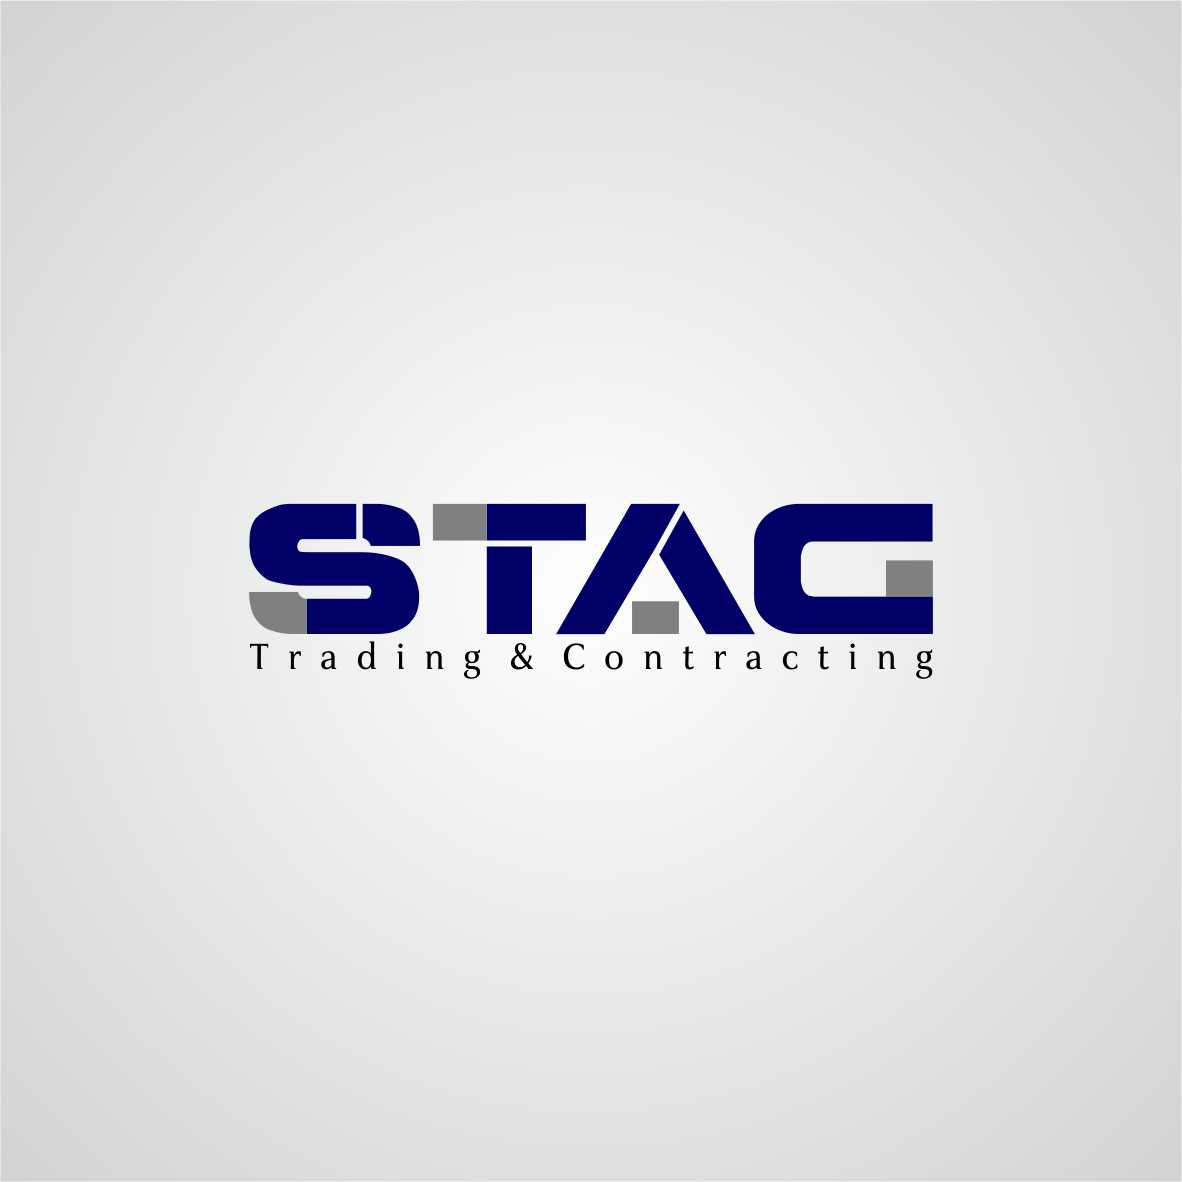 Logo Design by arteo_design - Entry No. 155 in the Logo Design Contest Captivating Logo Design for STAG Trading & Contracting.